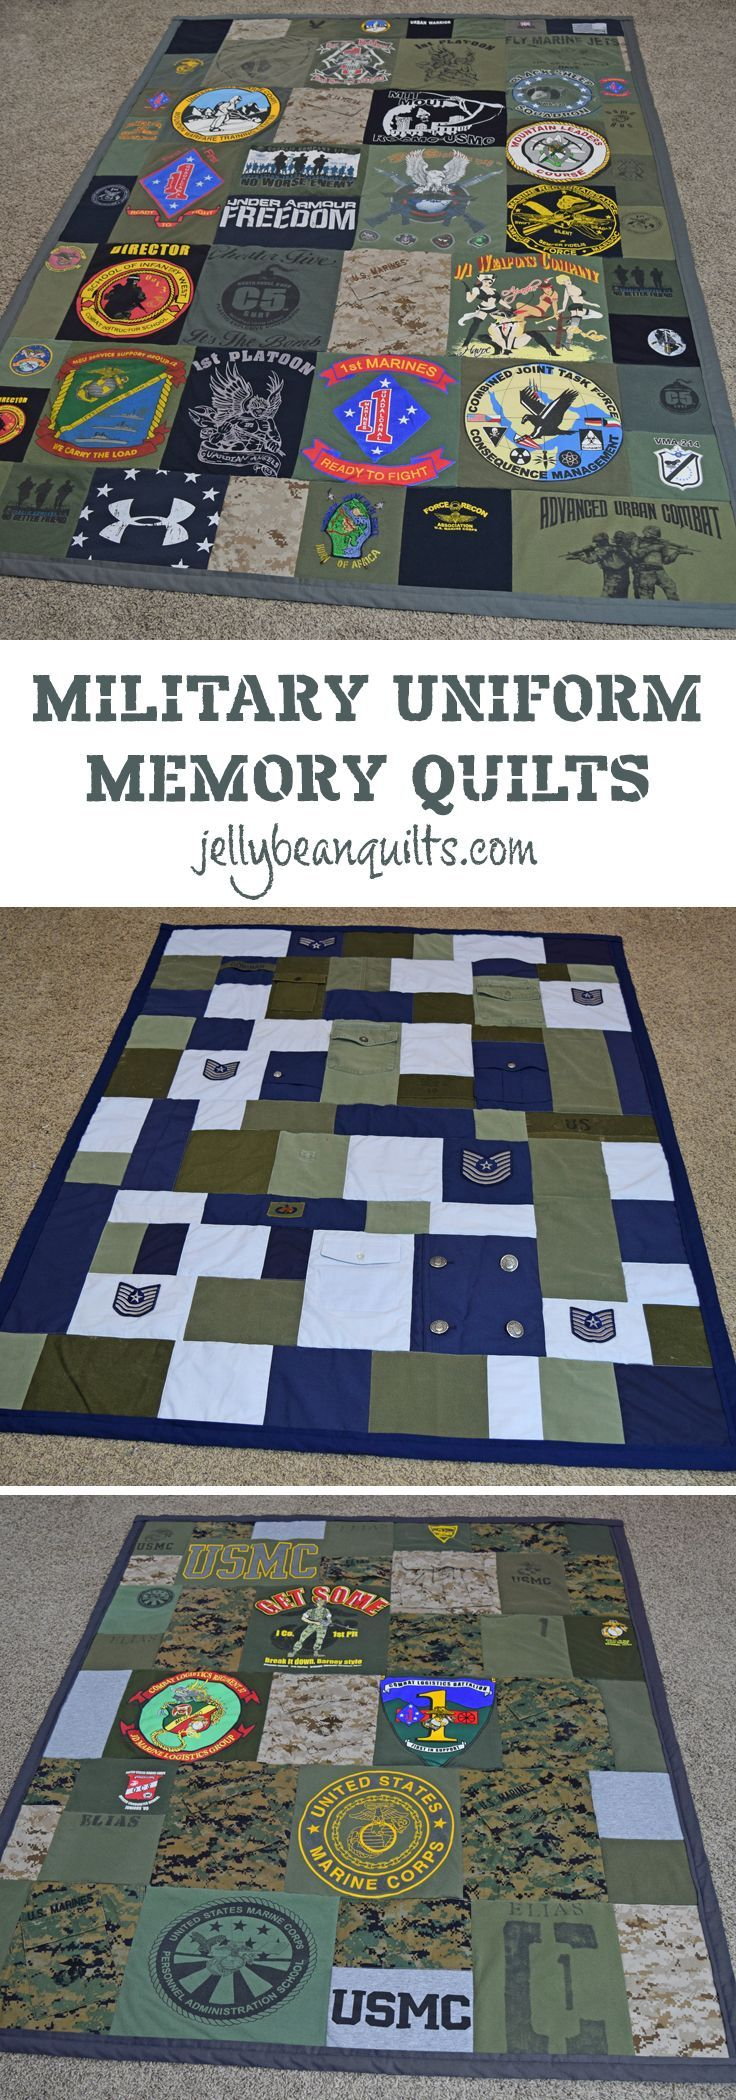 Love this idea - military memory quilt! Military quilt made with old uniforms & t-shirts from jellybeanquilts.com  (:Tap The LINK NOW:) We provide the best essential unique equipment and gear for active duty American patriotic military branches, well strategic selected.We love tactical American gear